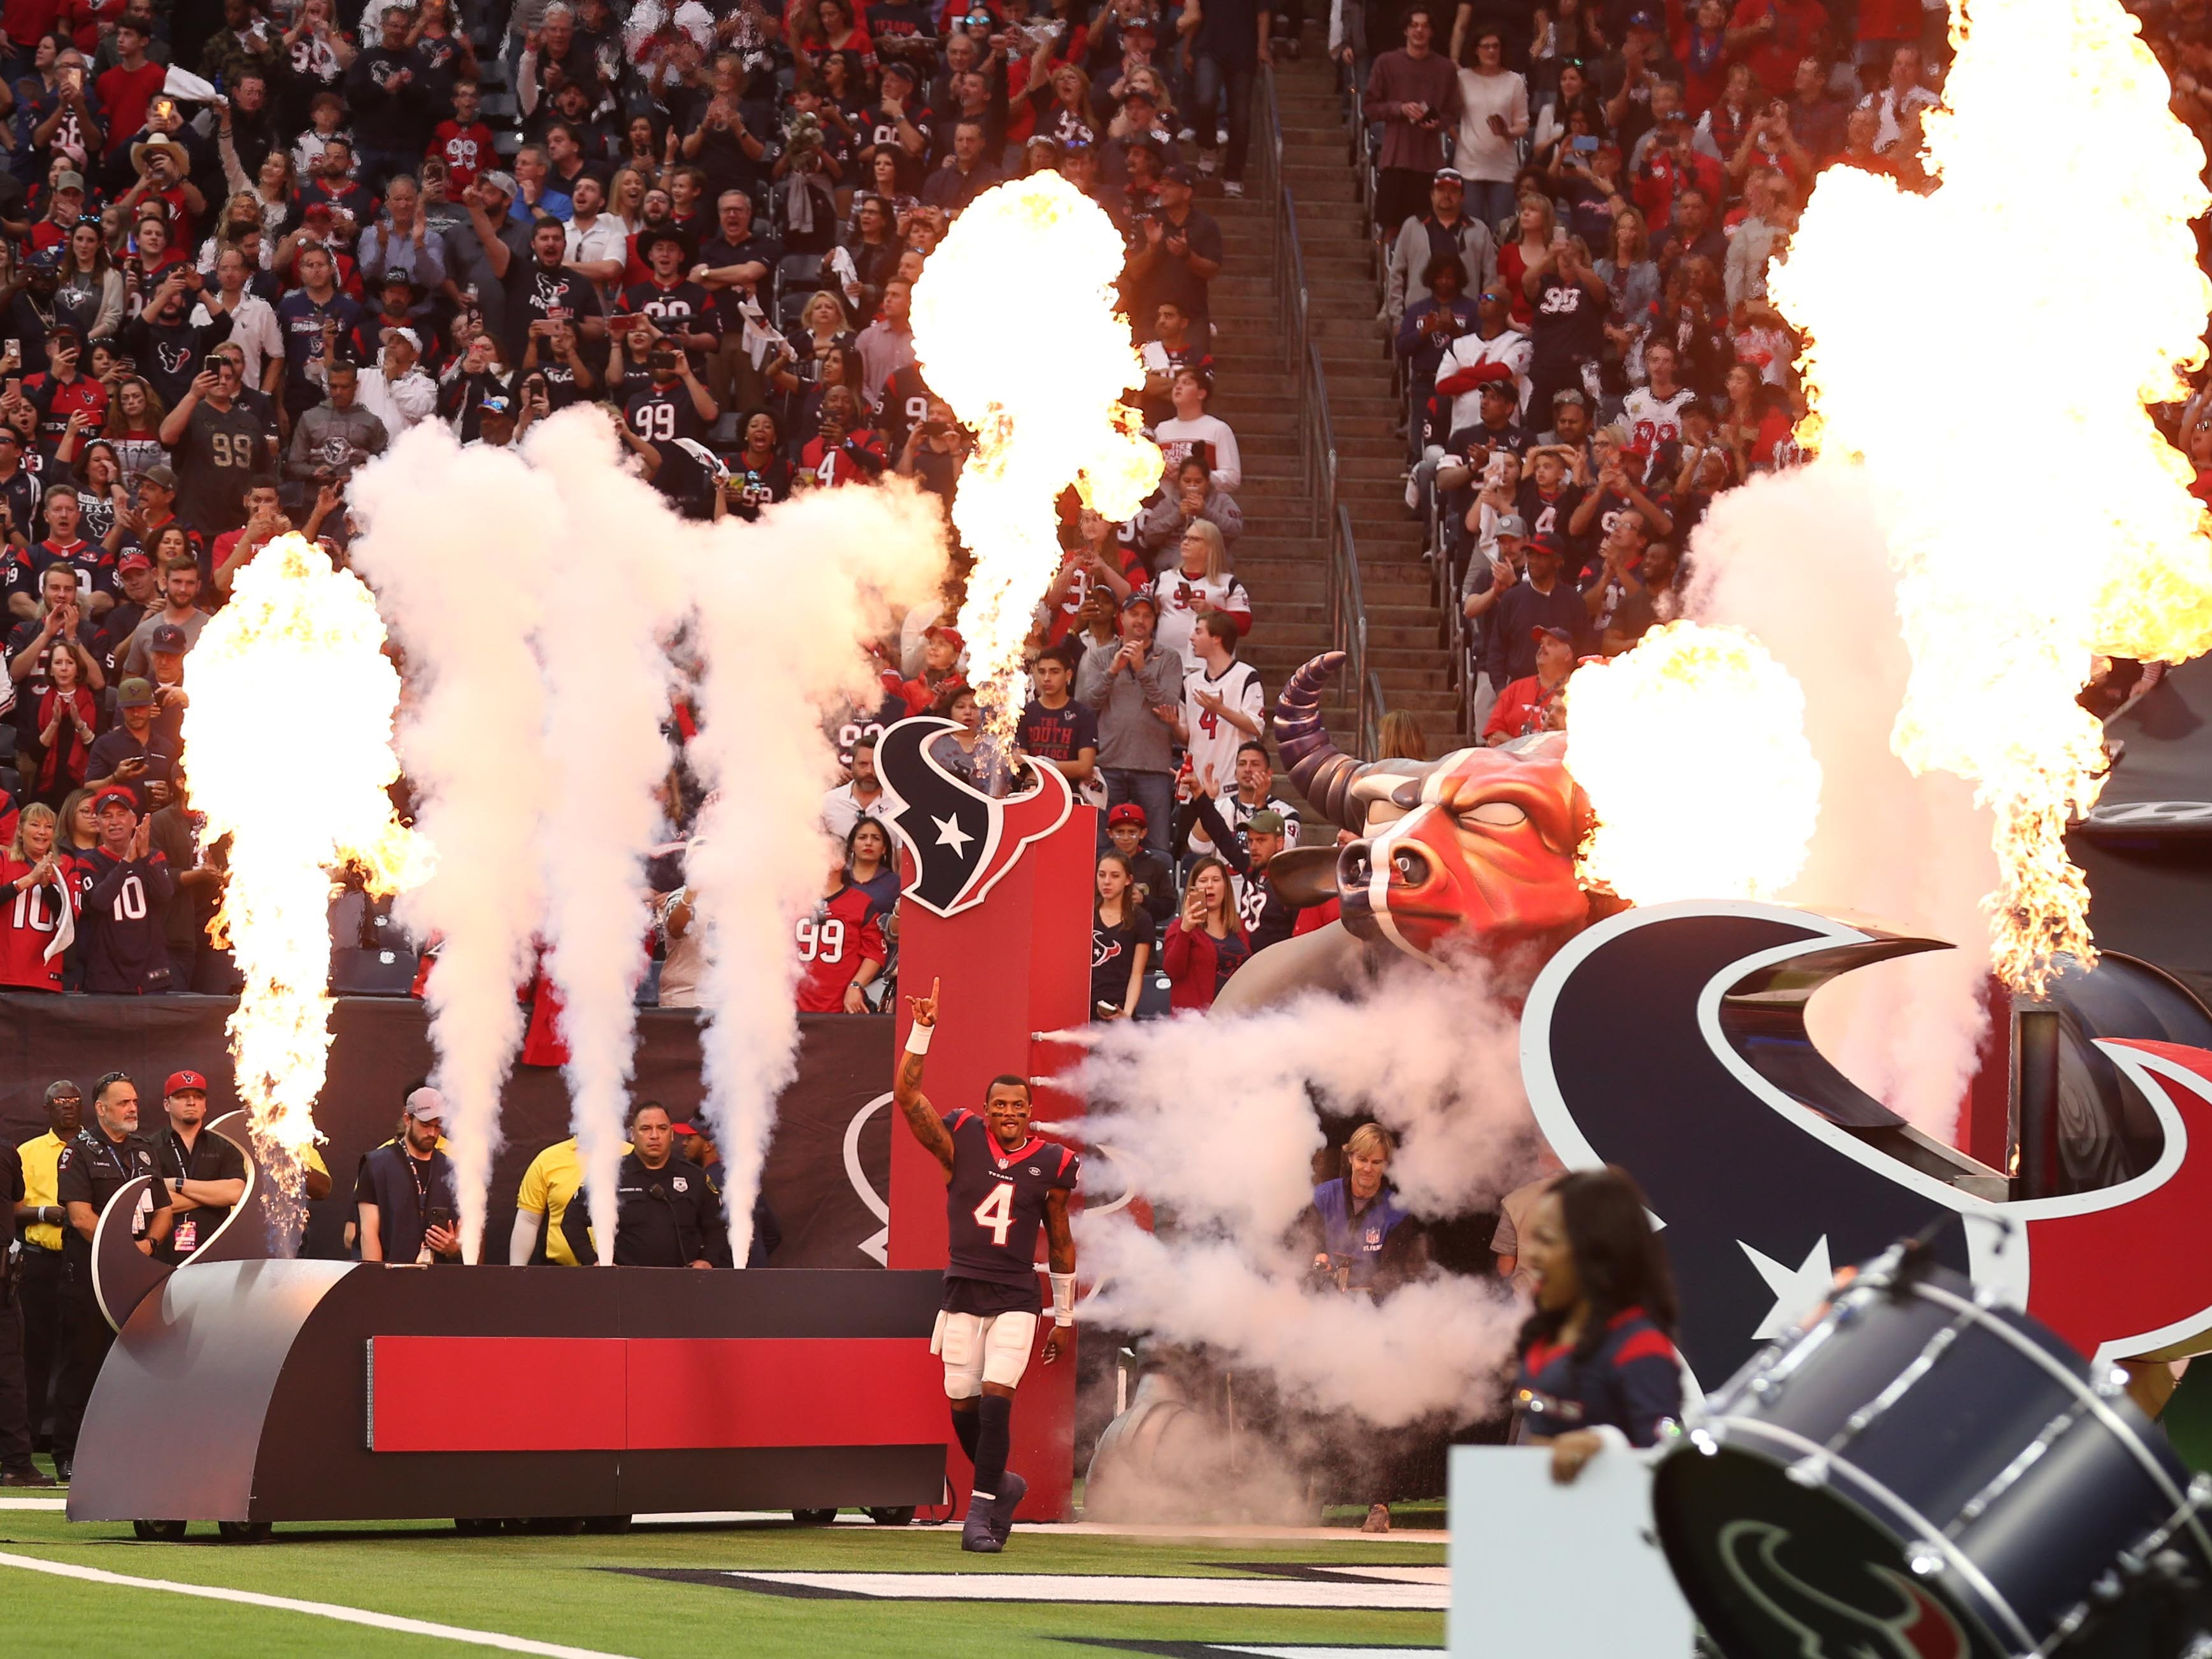 Houston Texans quarterback Deshaun Watson (4) is introduced before a AFC Wild Card playoff football game against the Indianapolis Colts at NRG Stadium.